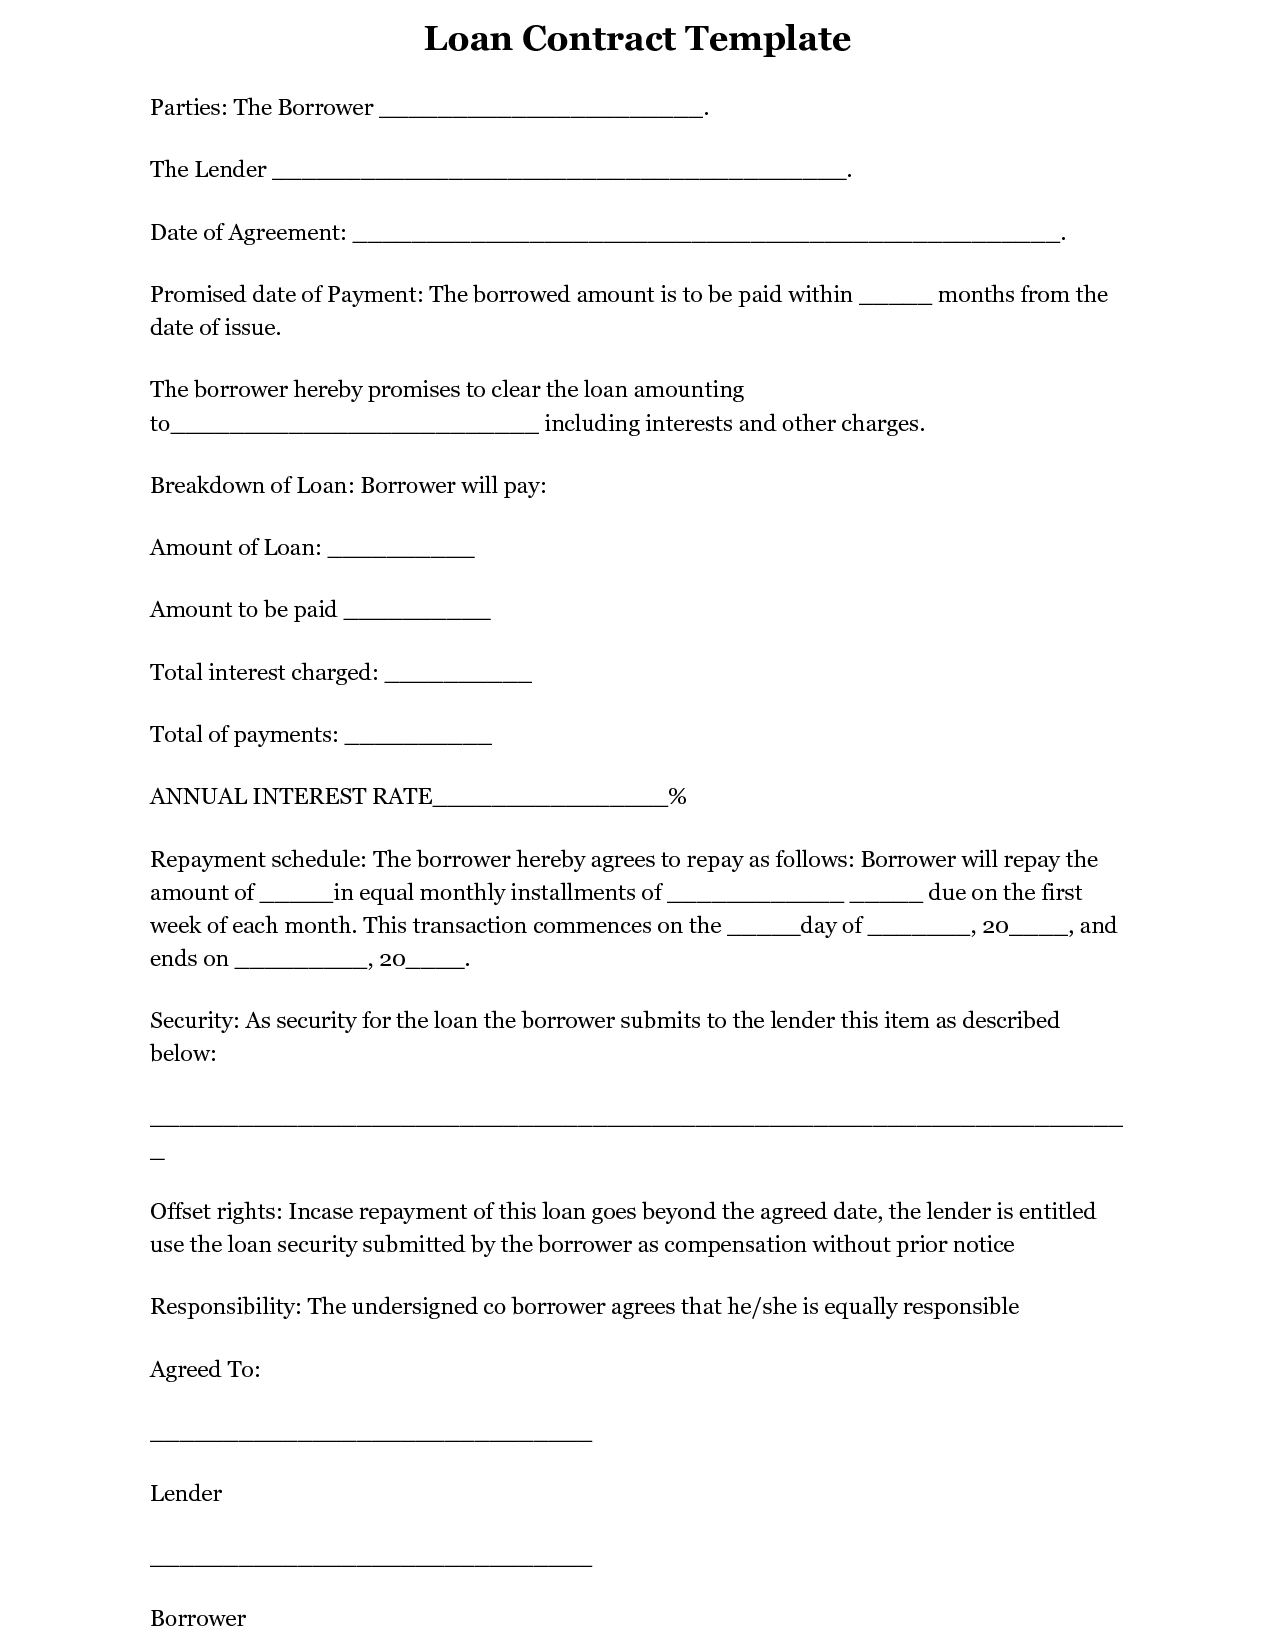 simple interest loan agreement template – Printable Loan Agreement